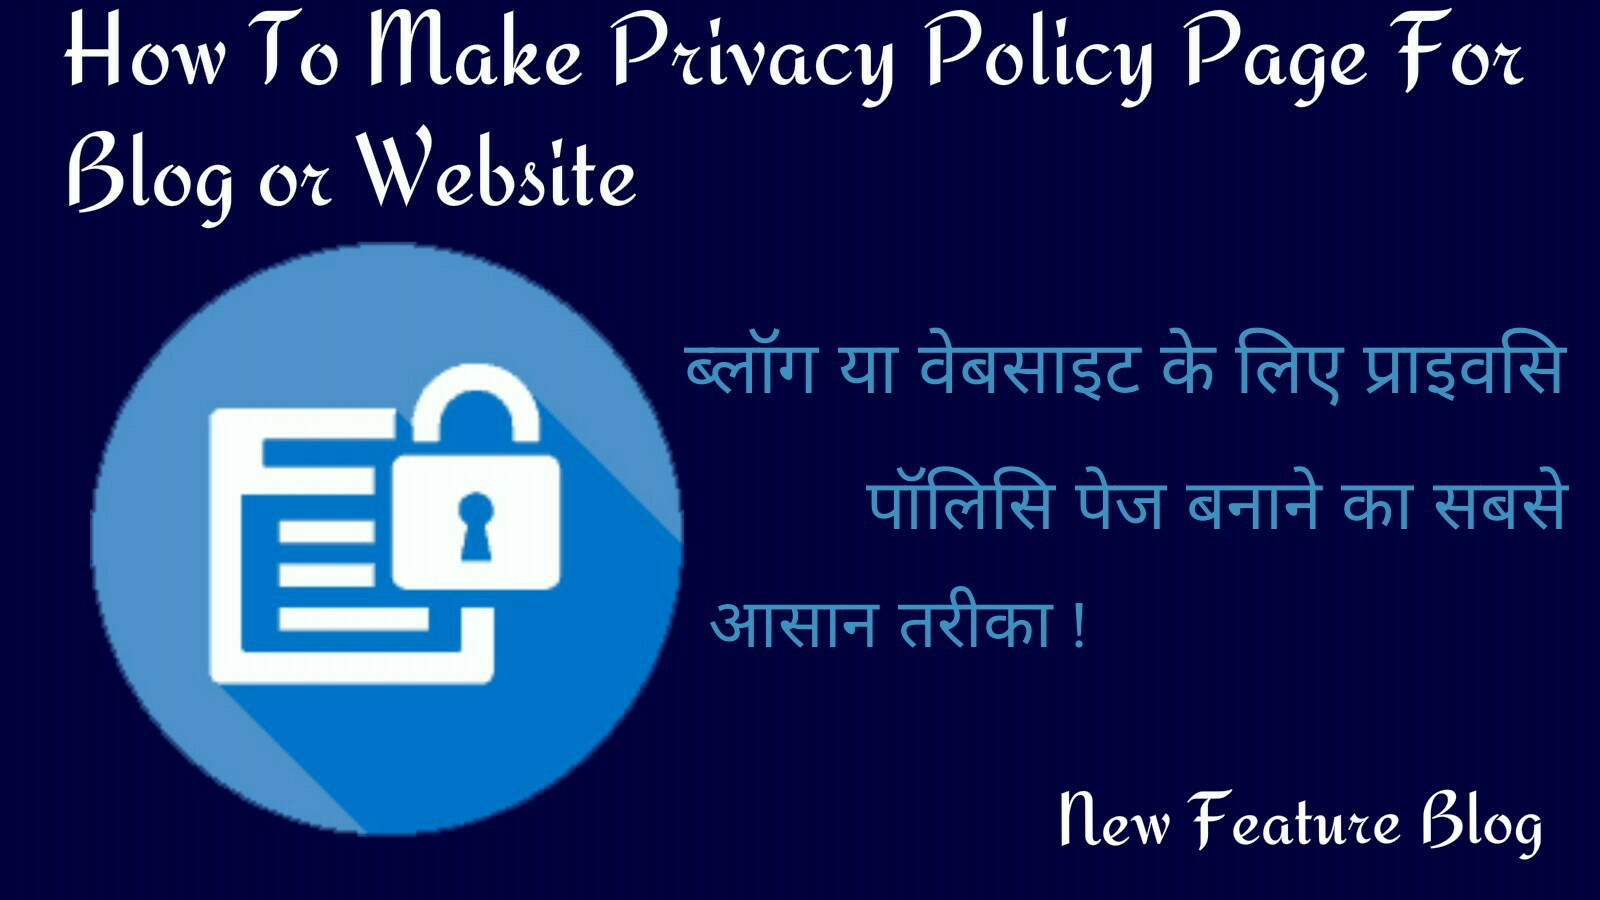 How-to-make-privacy-policy-page-for-blog